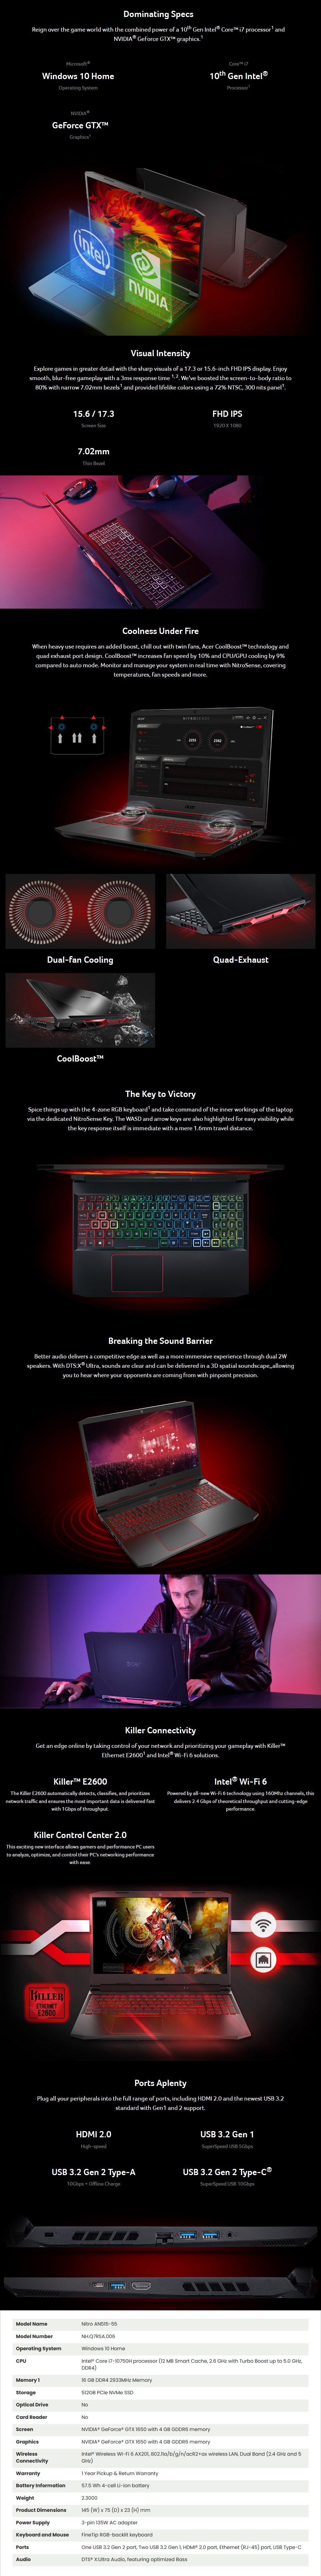 """Acer Nitro 5 15.6"""" Laptop i7-10750H 16GB 512GB GTX1650 Win10 Home - Overview 1"""